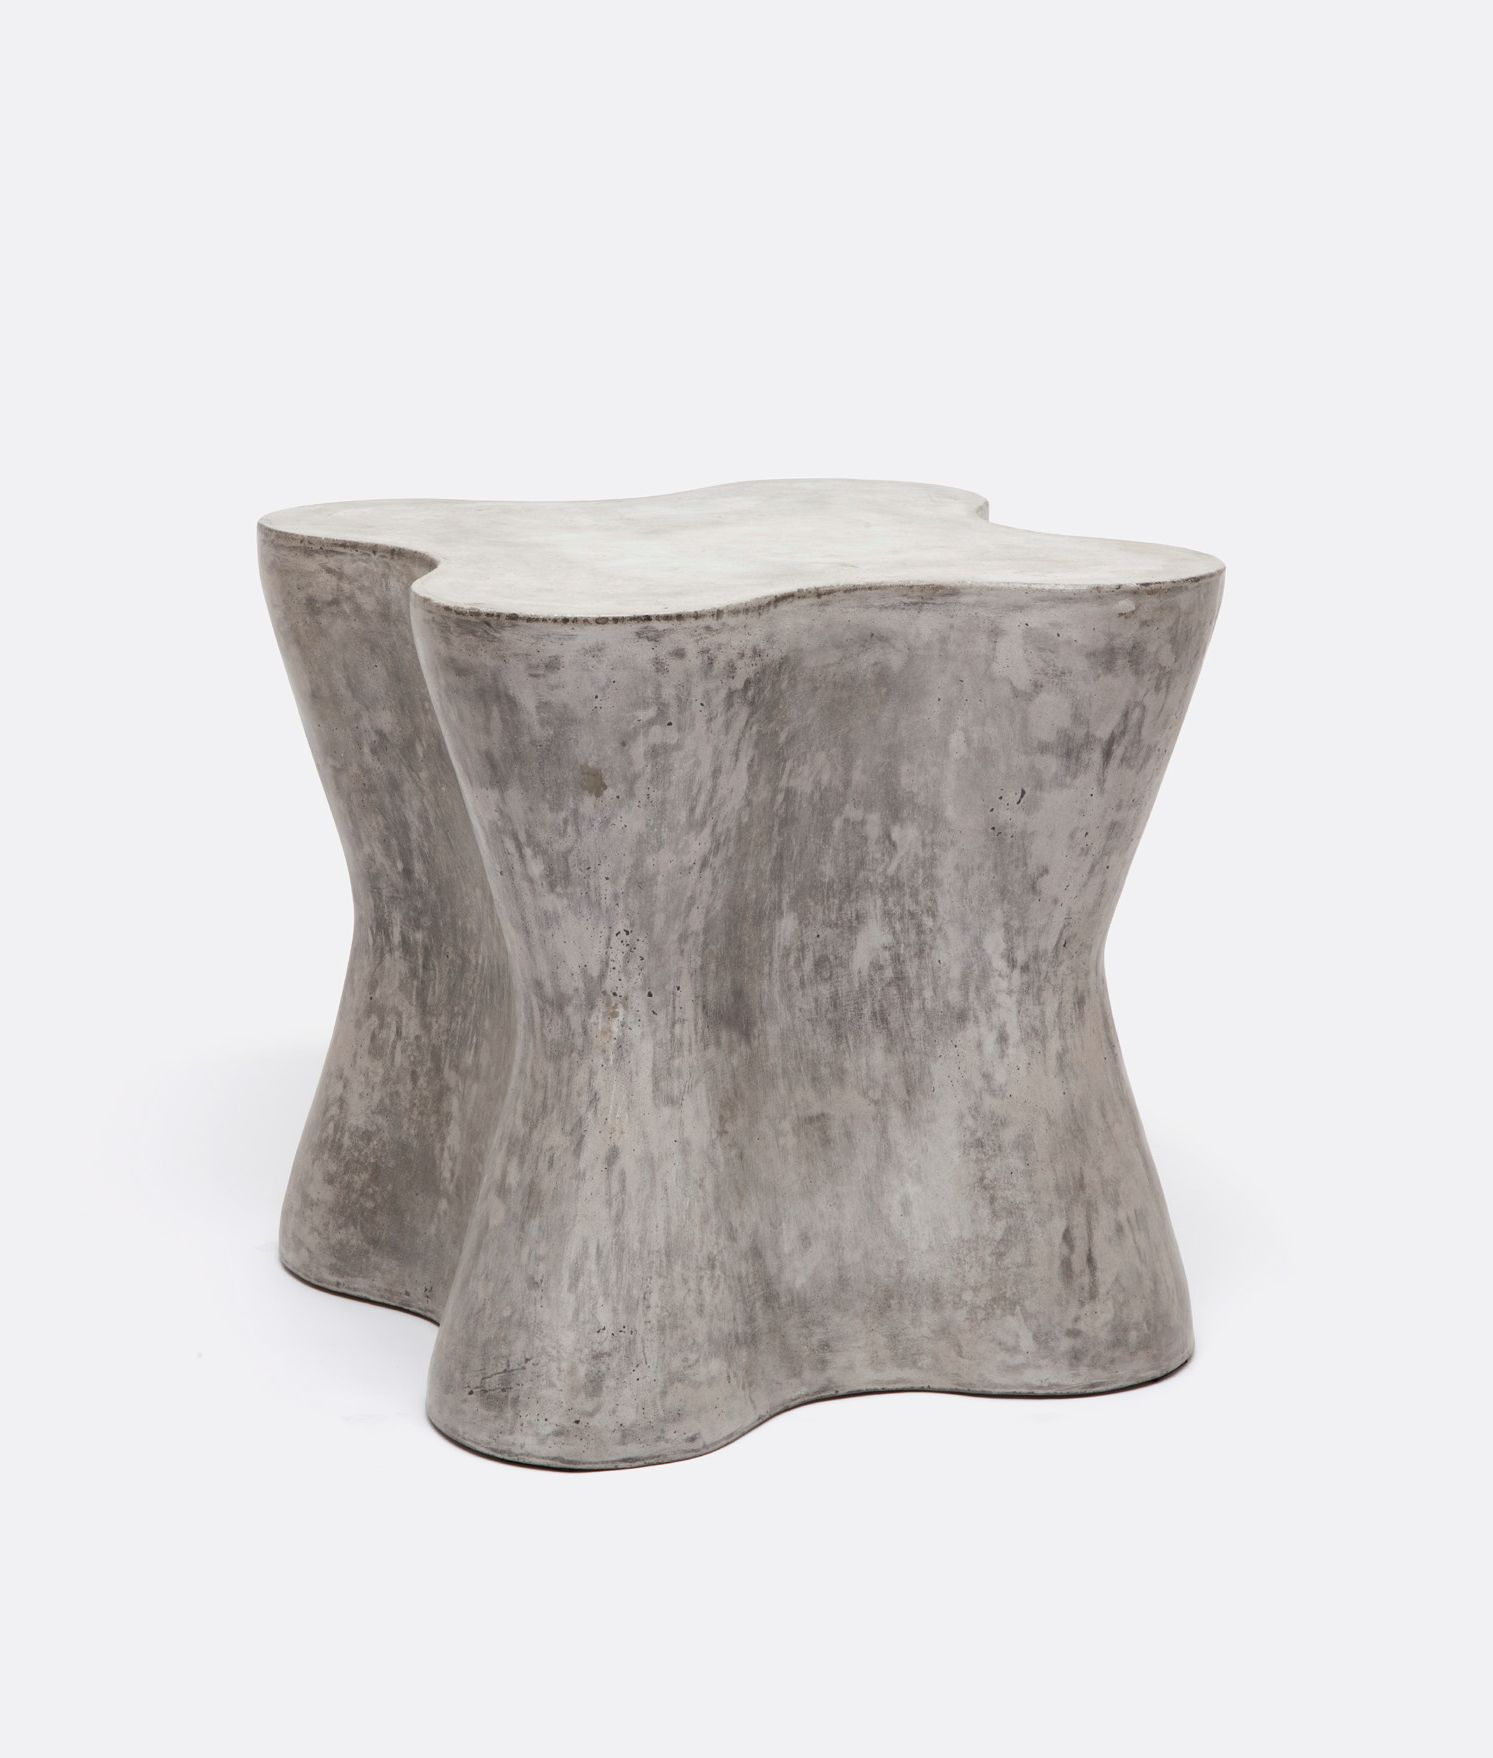 outdoor large arbre concrete side table mecox gardens fnst lgarbre grey colorful lamps counter height gold desk lamp threshold accent furniture kohls bedspreads piece and chairs